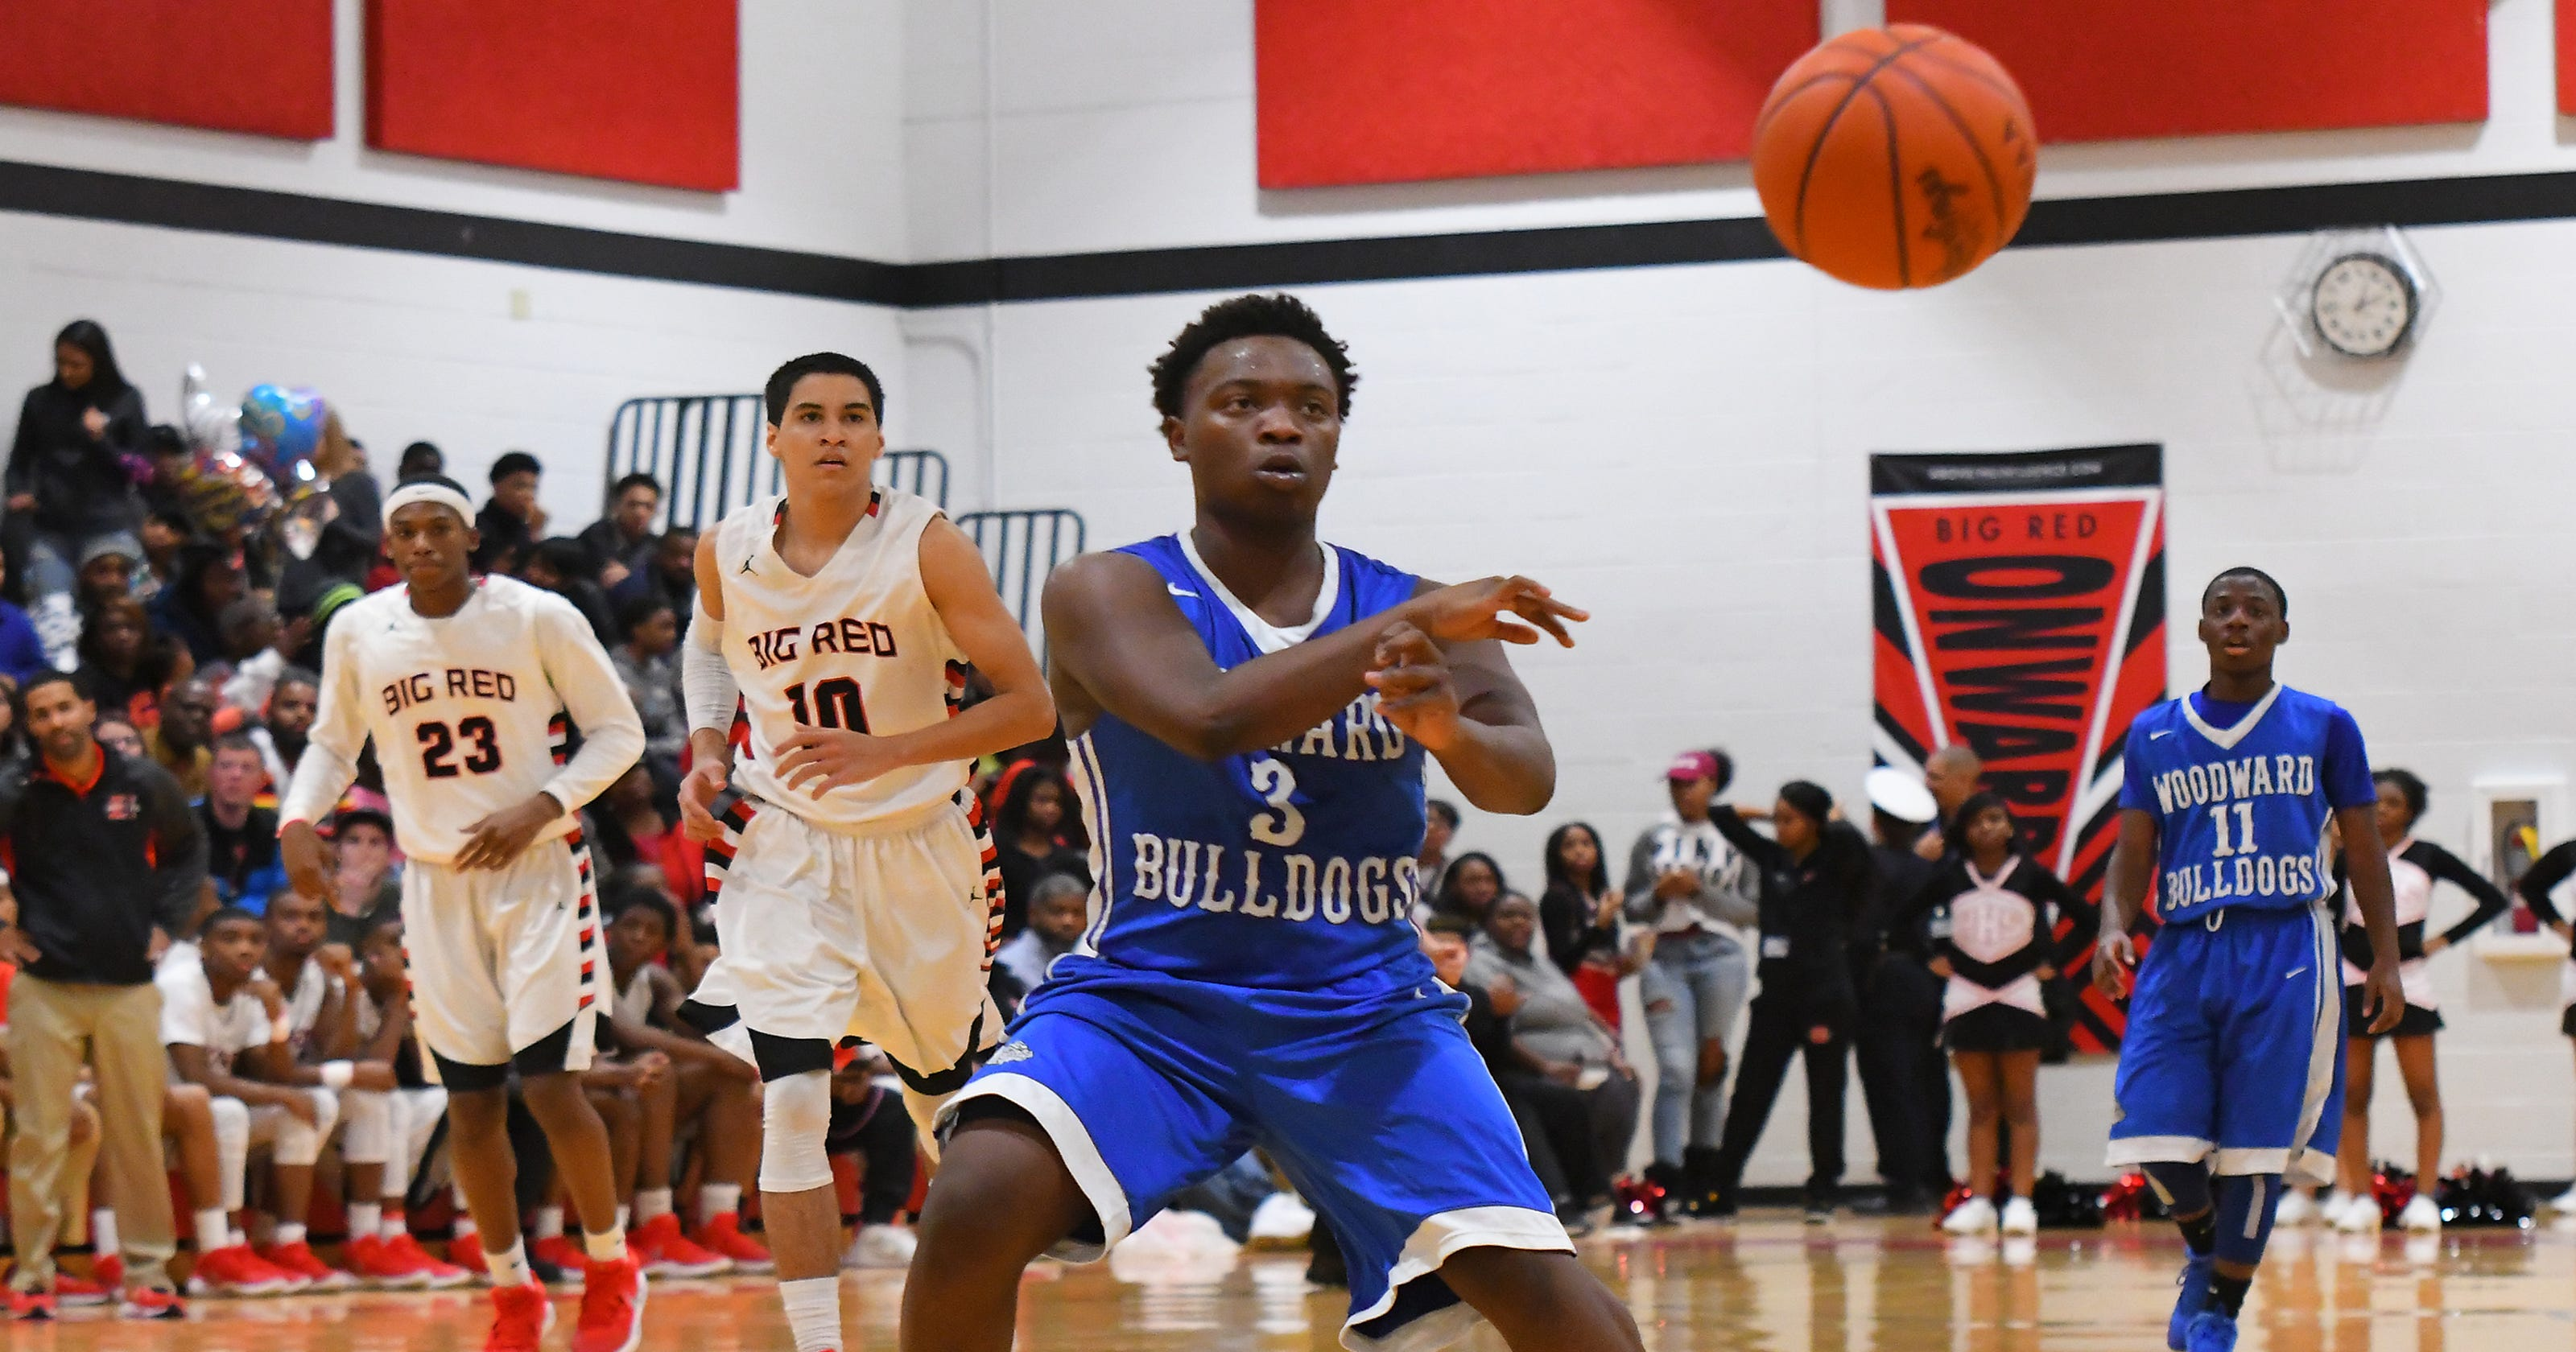 144edd76a9c8 Prep hoops  Takeaways from a thrilling week of action